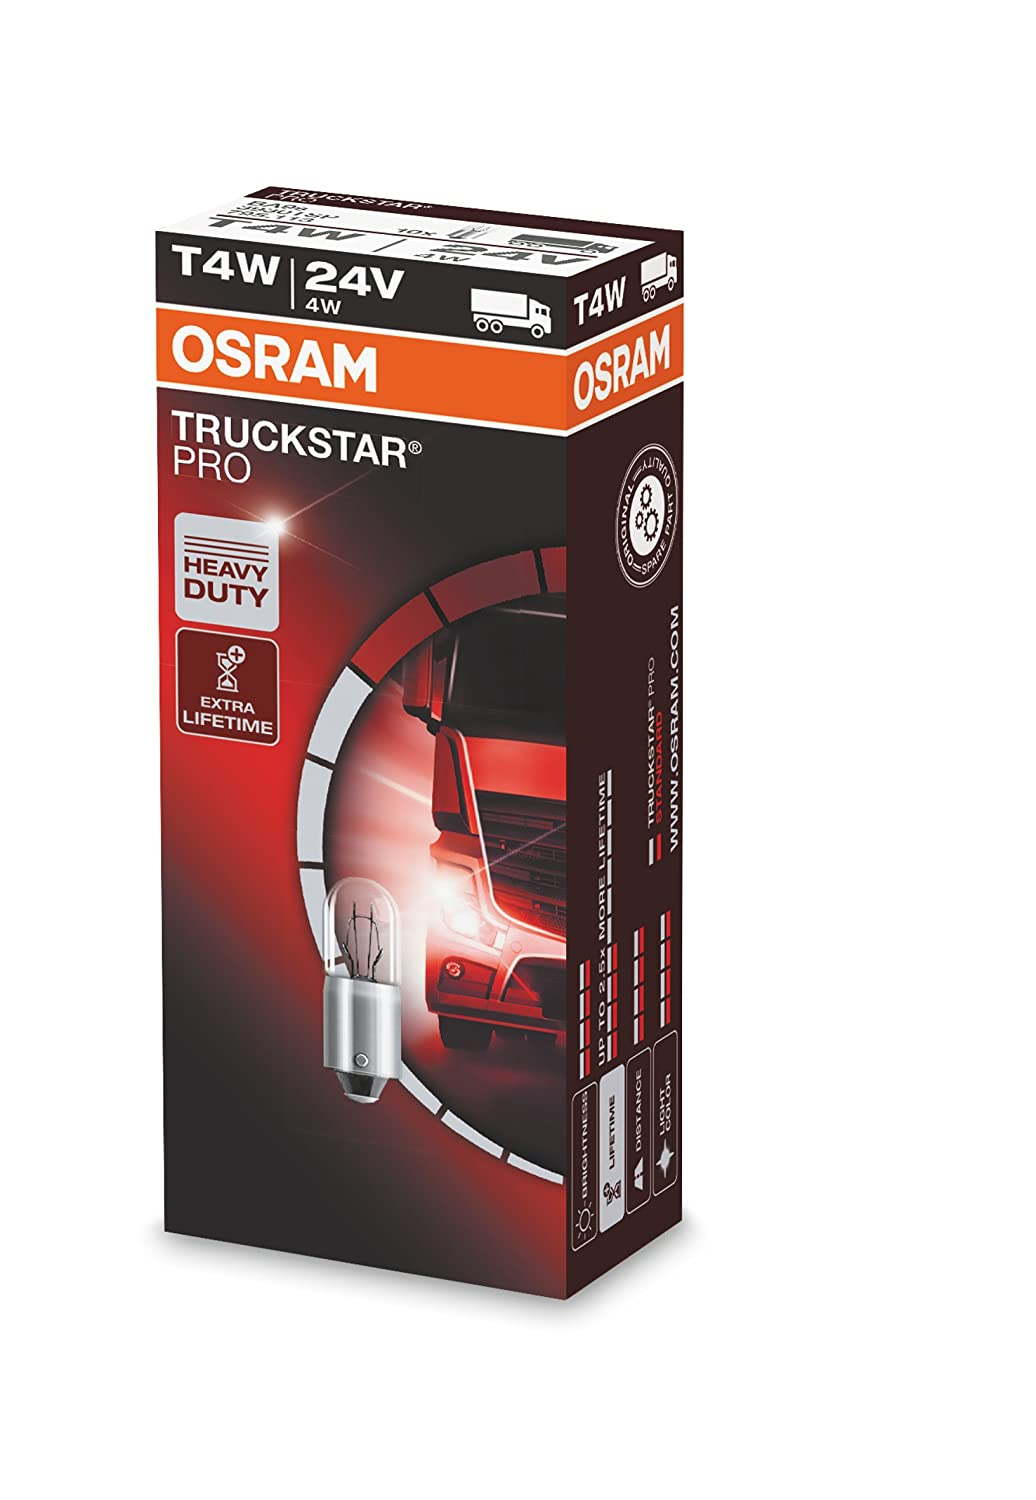 Osram 3930TSP Truckstar Pro Lamps, 24 V, 4 W, Set of 10